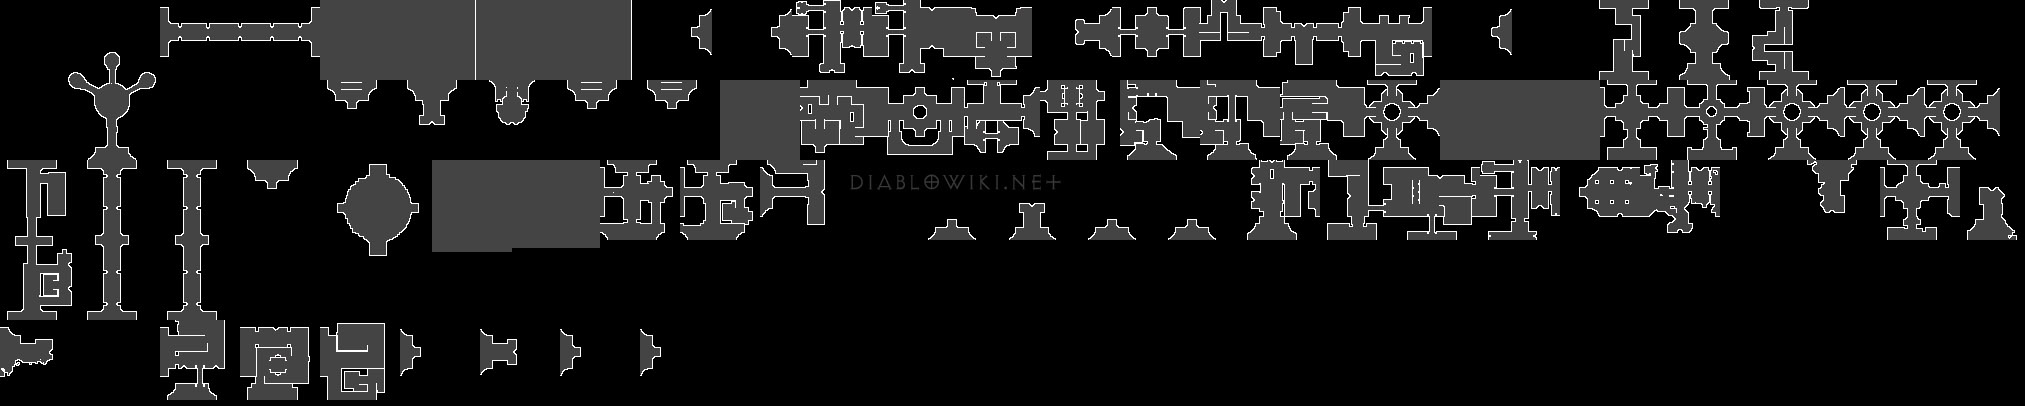 Roguelike algorithm for maze generation? Map_tiles